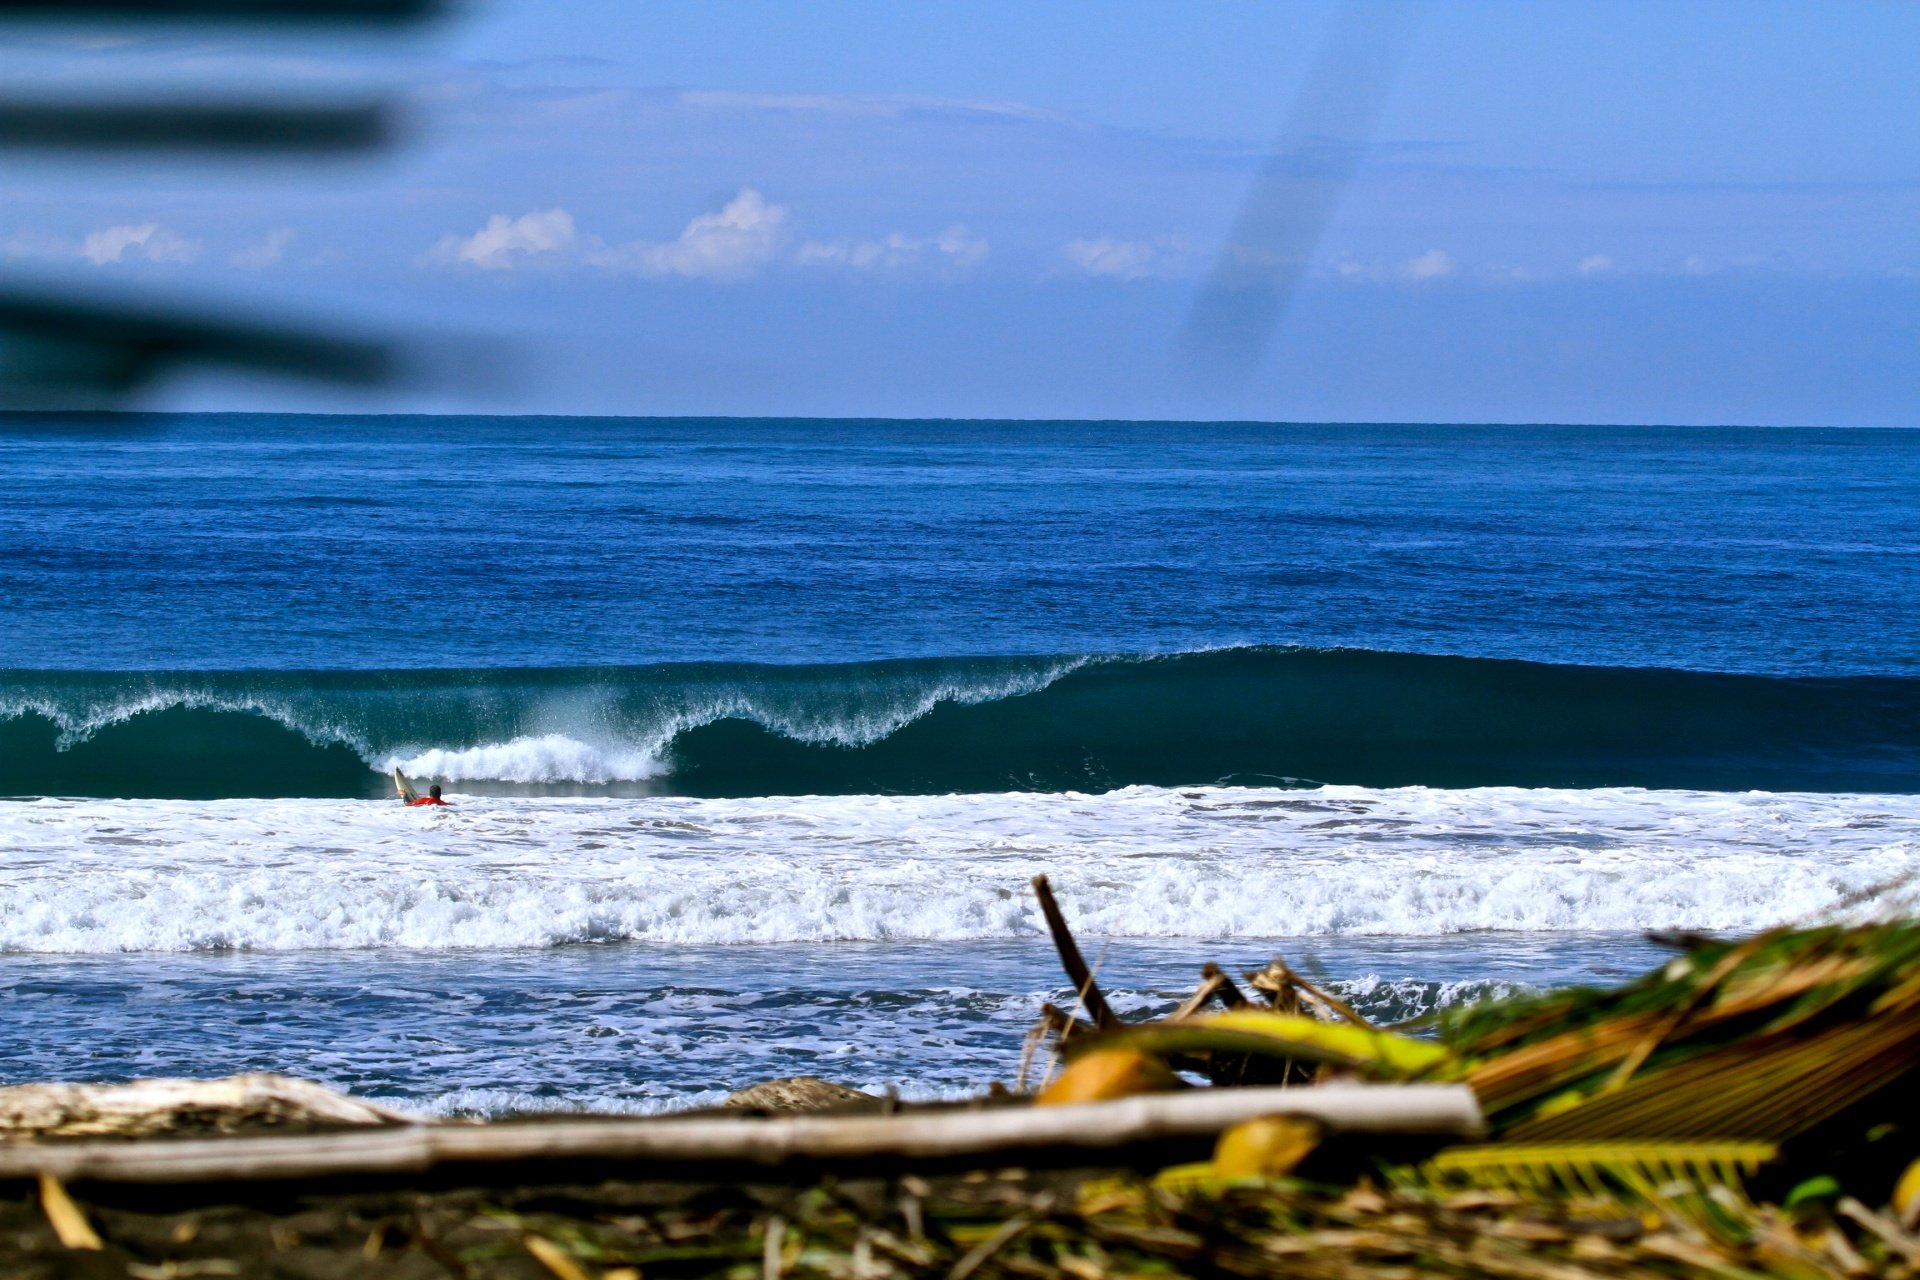 Surf The Earth CR's photo of Playa Hermosa